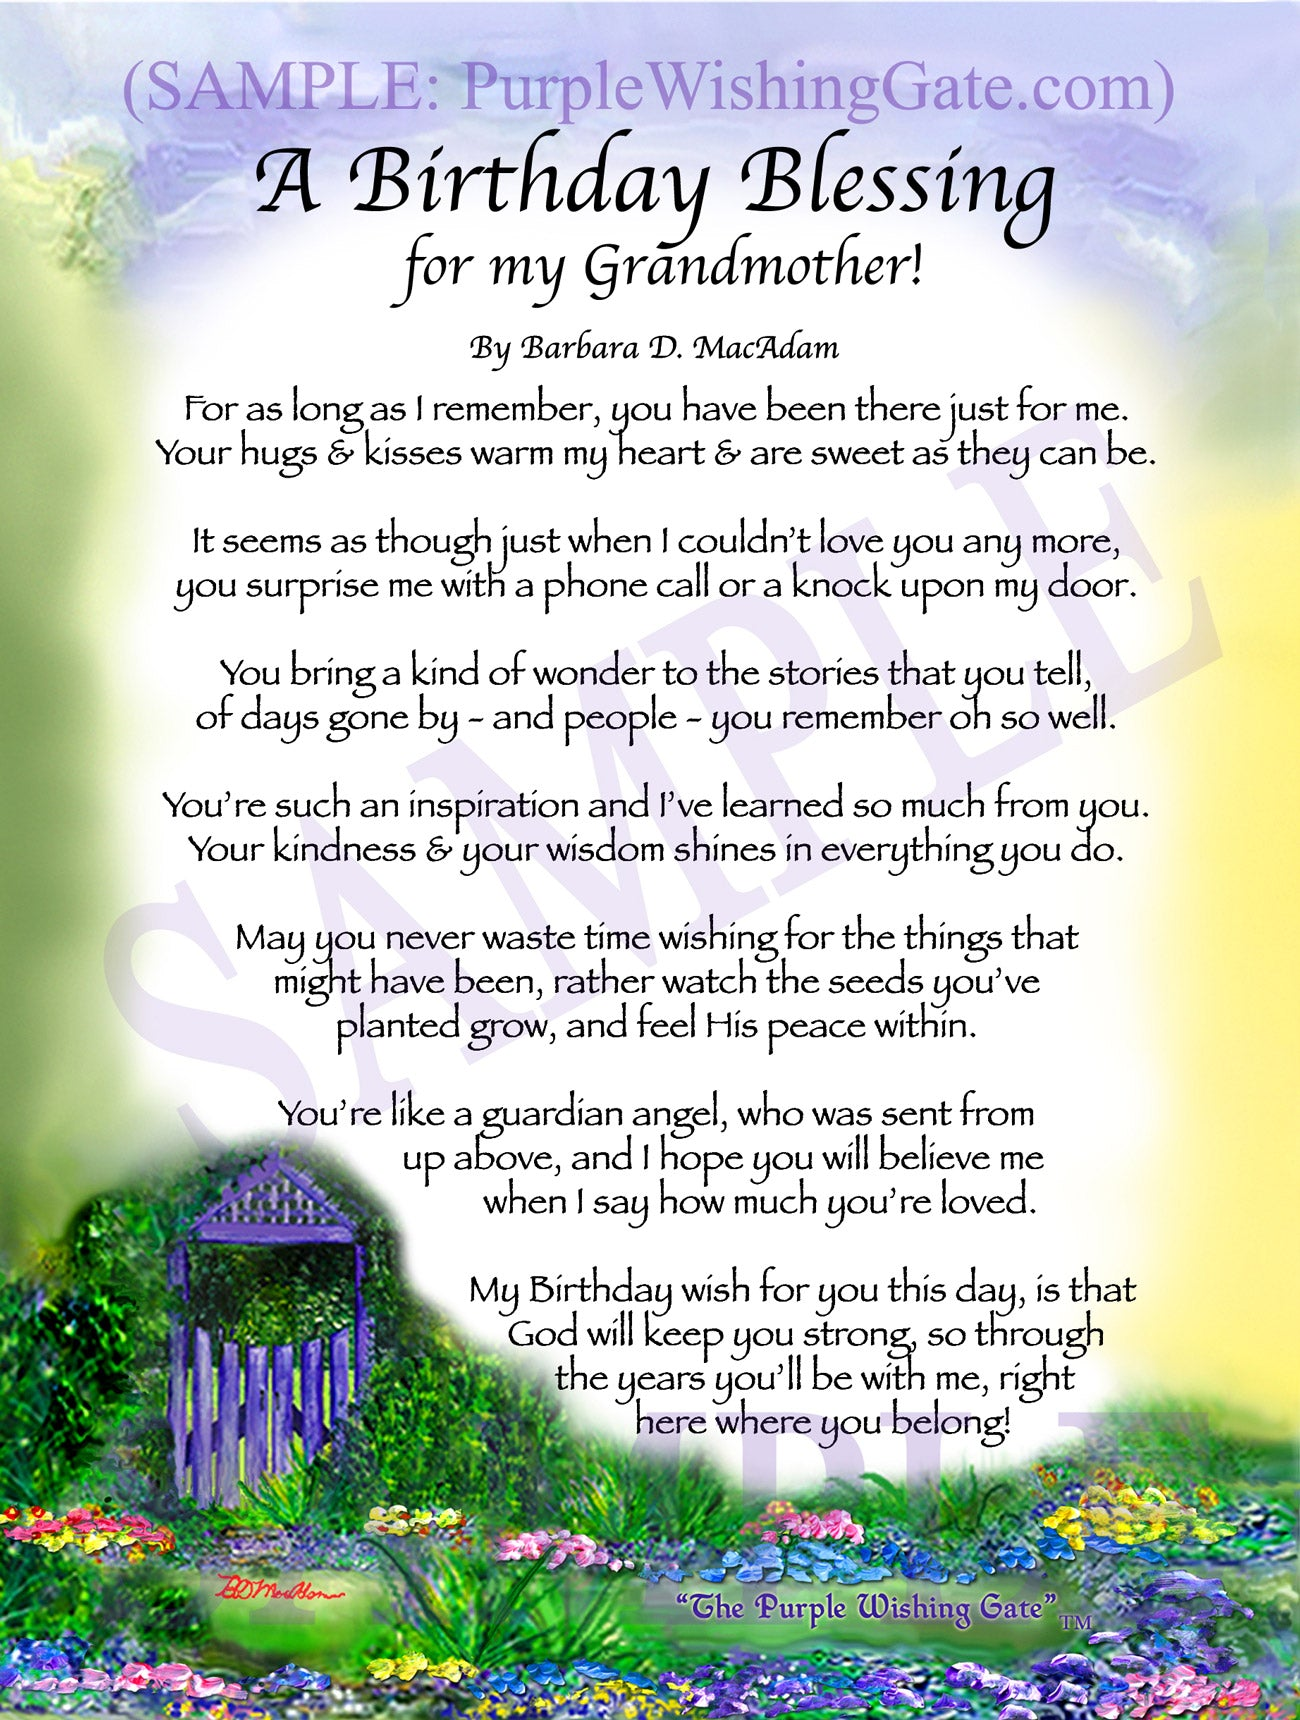 A Birthday Blessing for my Grandmother! - Birthday Gift - PurpleWishingGate.com